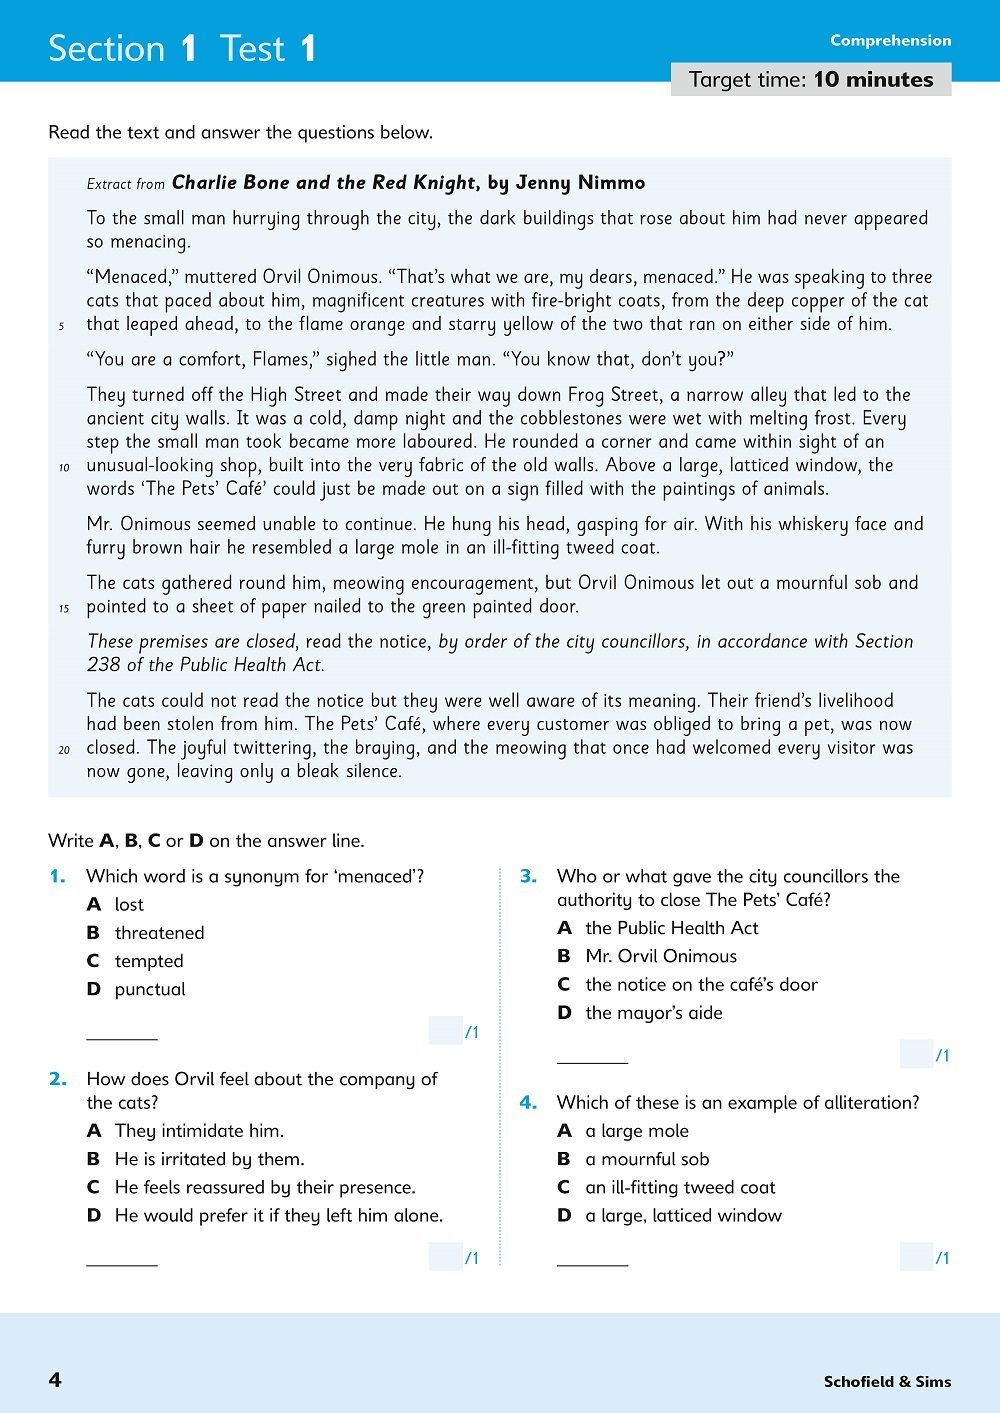 11+ English Rapid Tests Book 5: Year 6, Ages 10-11: Amazon co uk